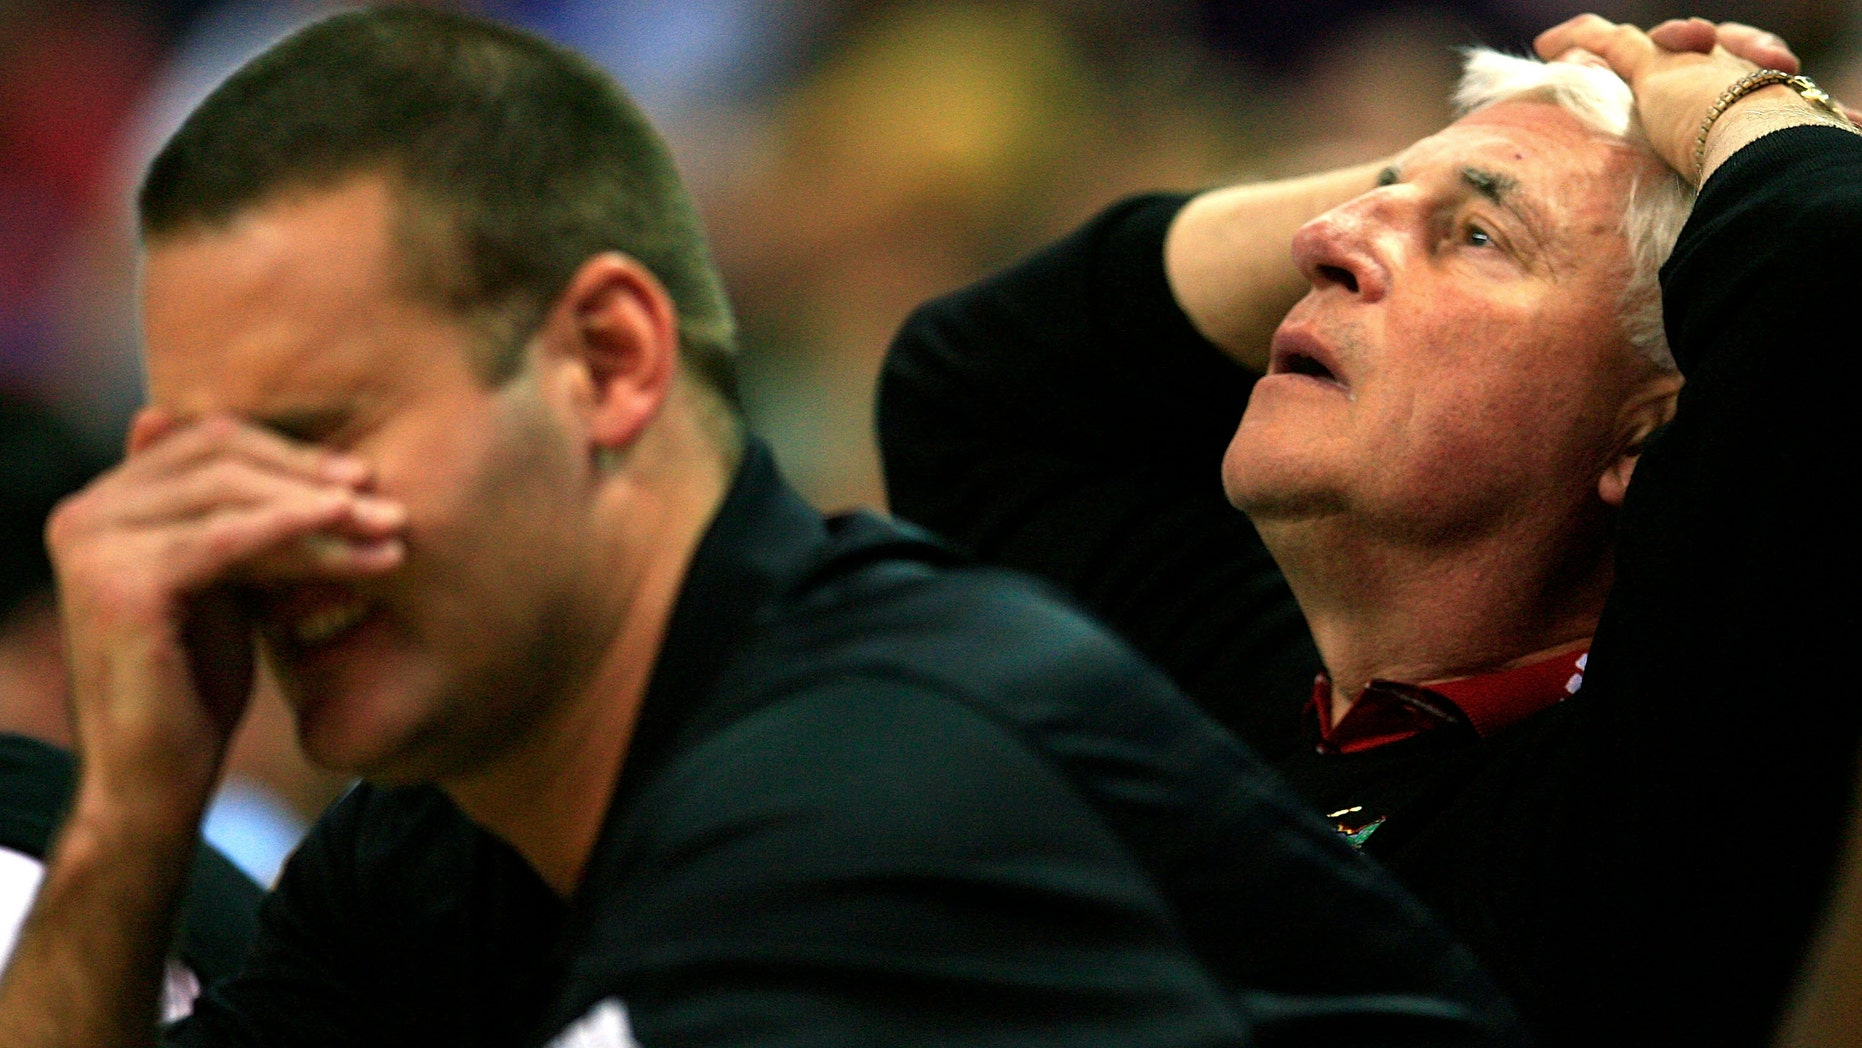 OKLAHOMA CITY - MARCH 09:  Head coach Bob Knight of the Texas Tech Red Raiders and head coach designee and son, Pat Knight, react after a missed basket during the quarterfinal game of the Phillips 66 Big 12 Men's Basketball Championship against the Kansas State Wildcats on March 9, 2007 at the Ford Center in Oklahoma City, Oklahoma.  (Photo by Jamie Squire/Getty Images)